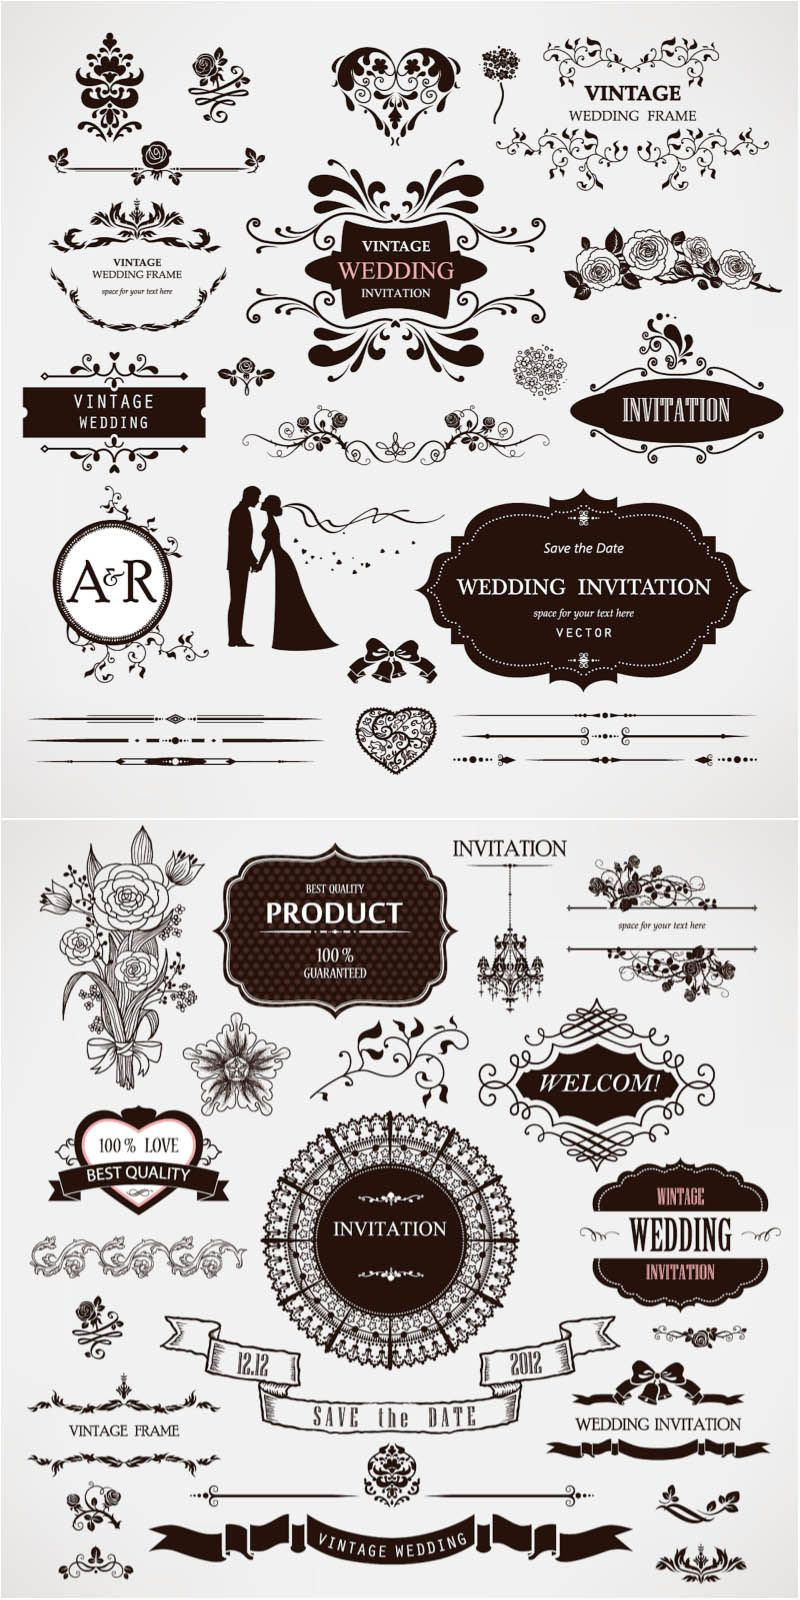 Wedding decor vector vector graphics vector illustrations wedding decor vector vector graphics vector illustrations junglespirit Image collections